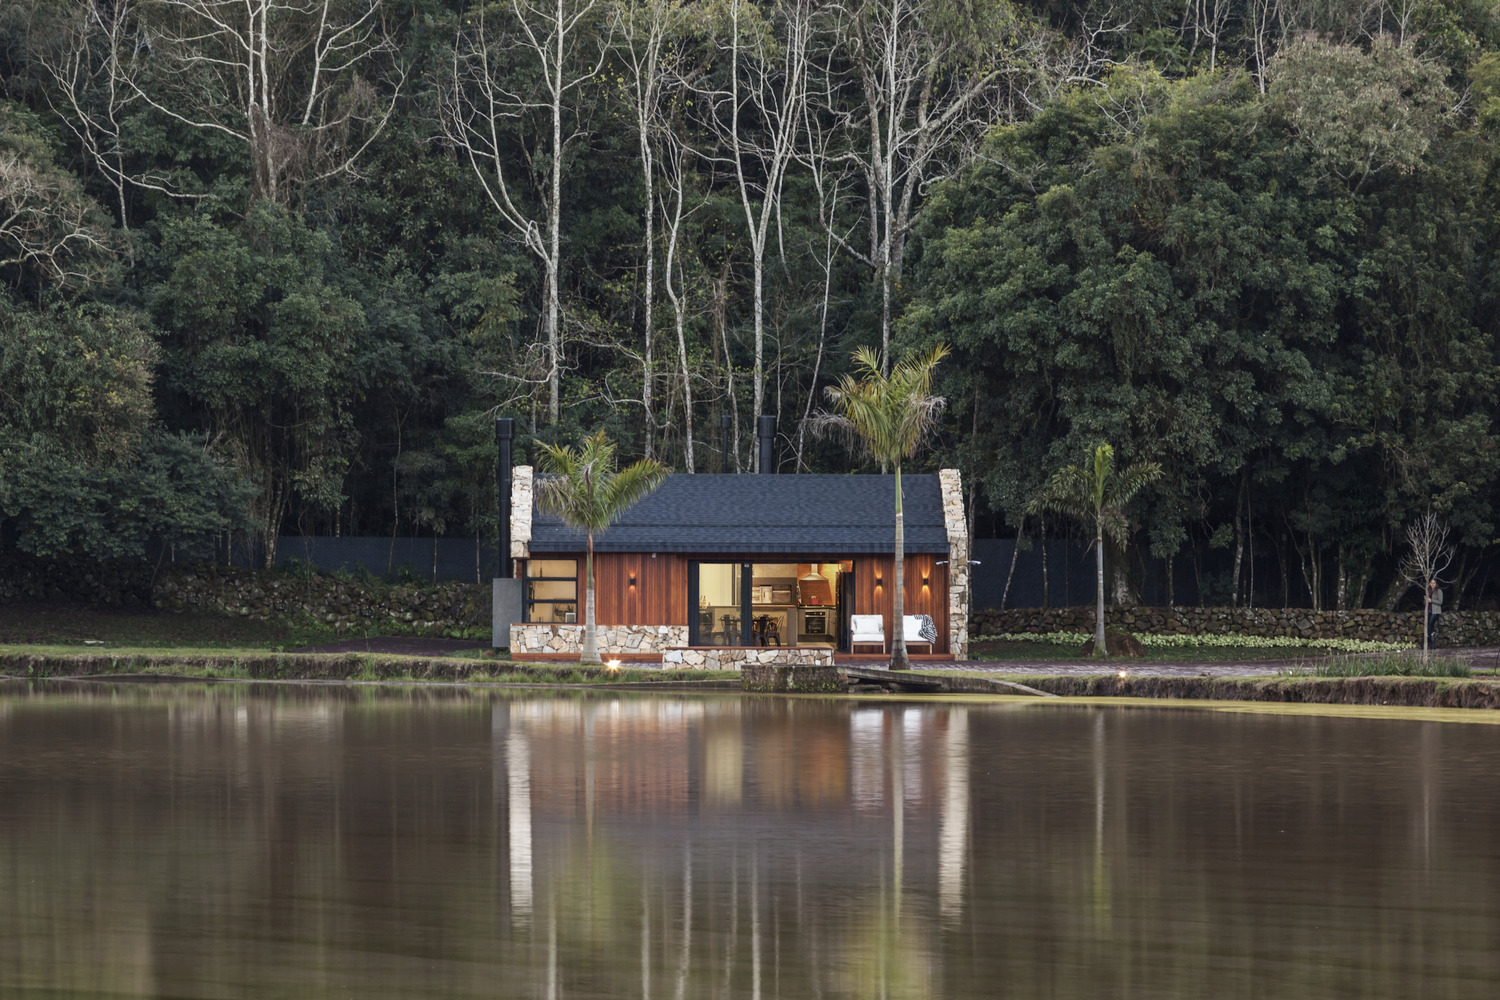 Lake House / Cadi Arquitetura - architecture - red_wolf | ello